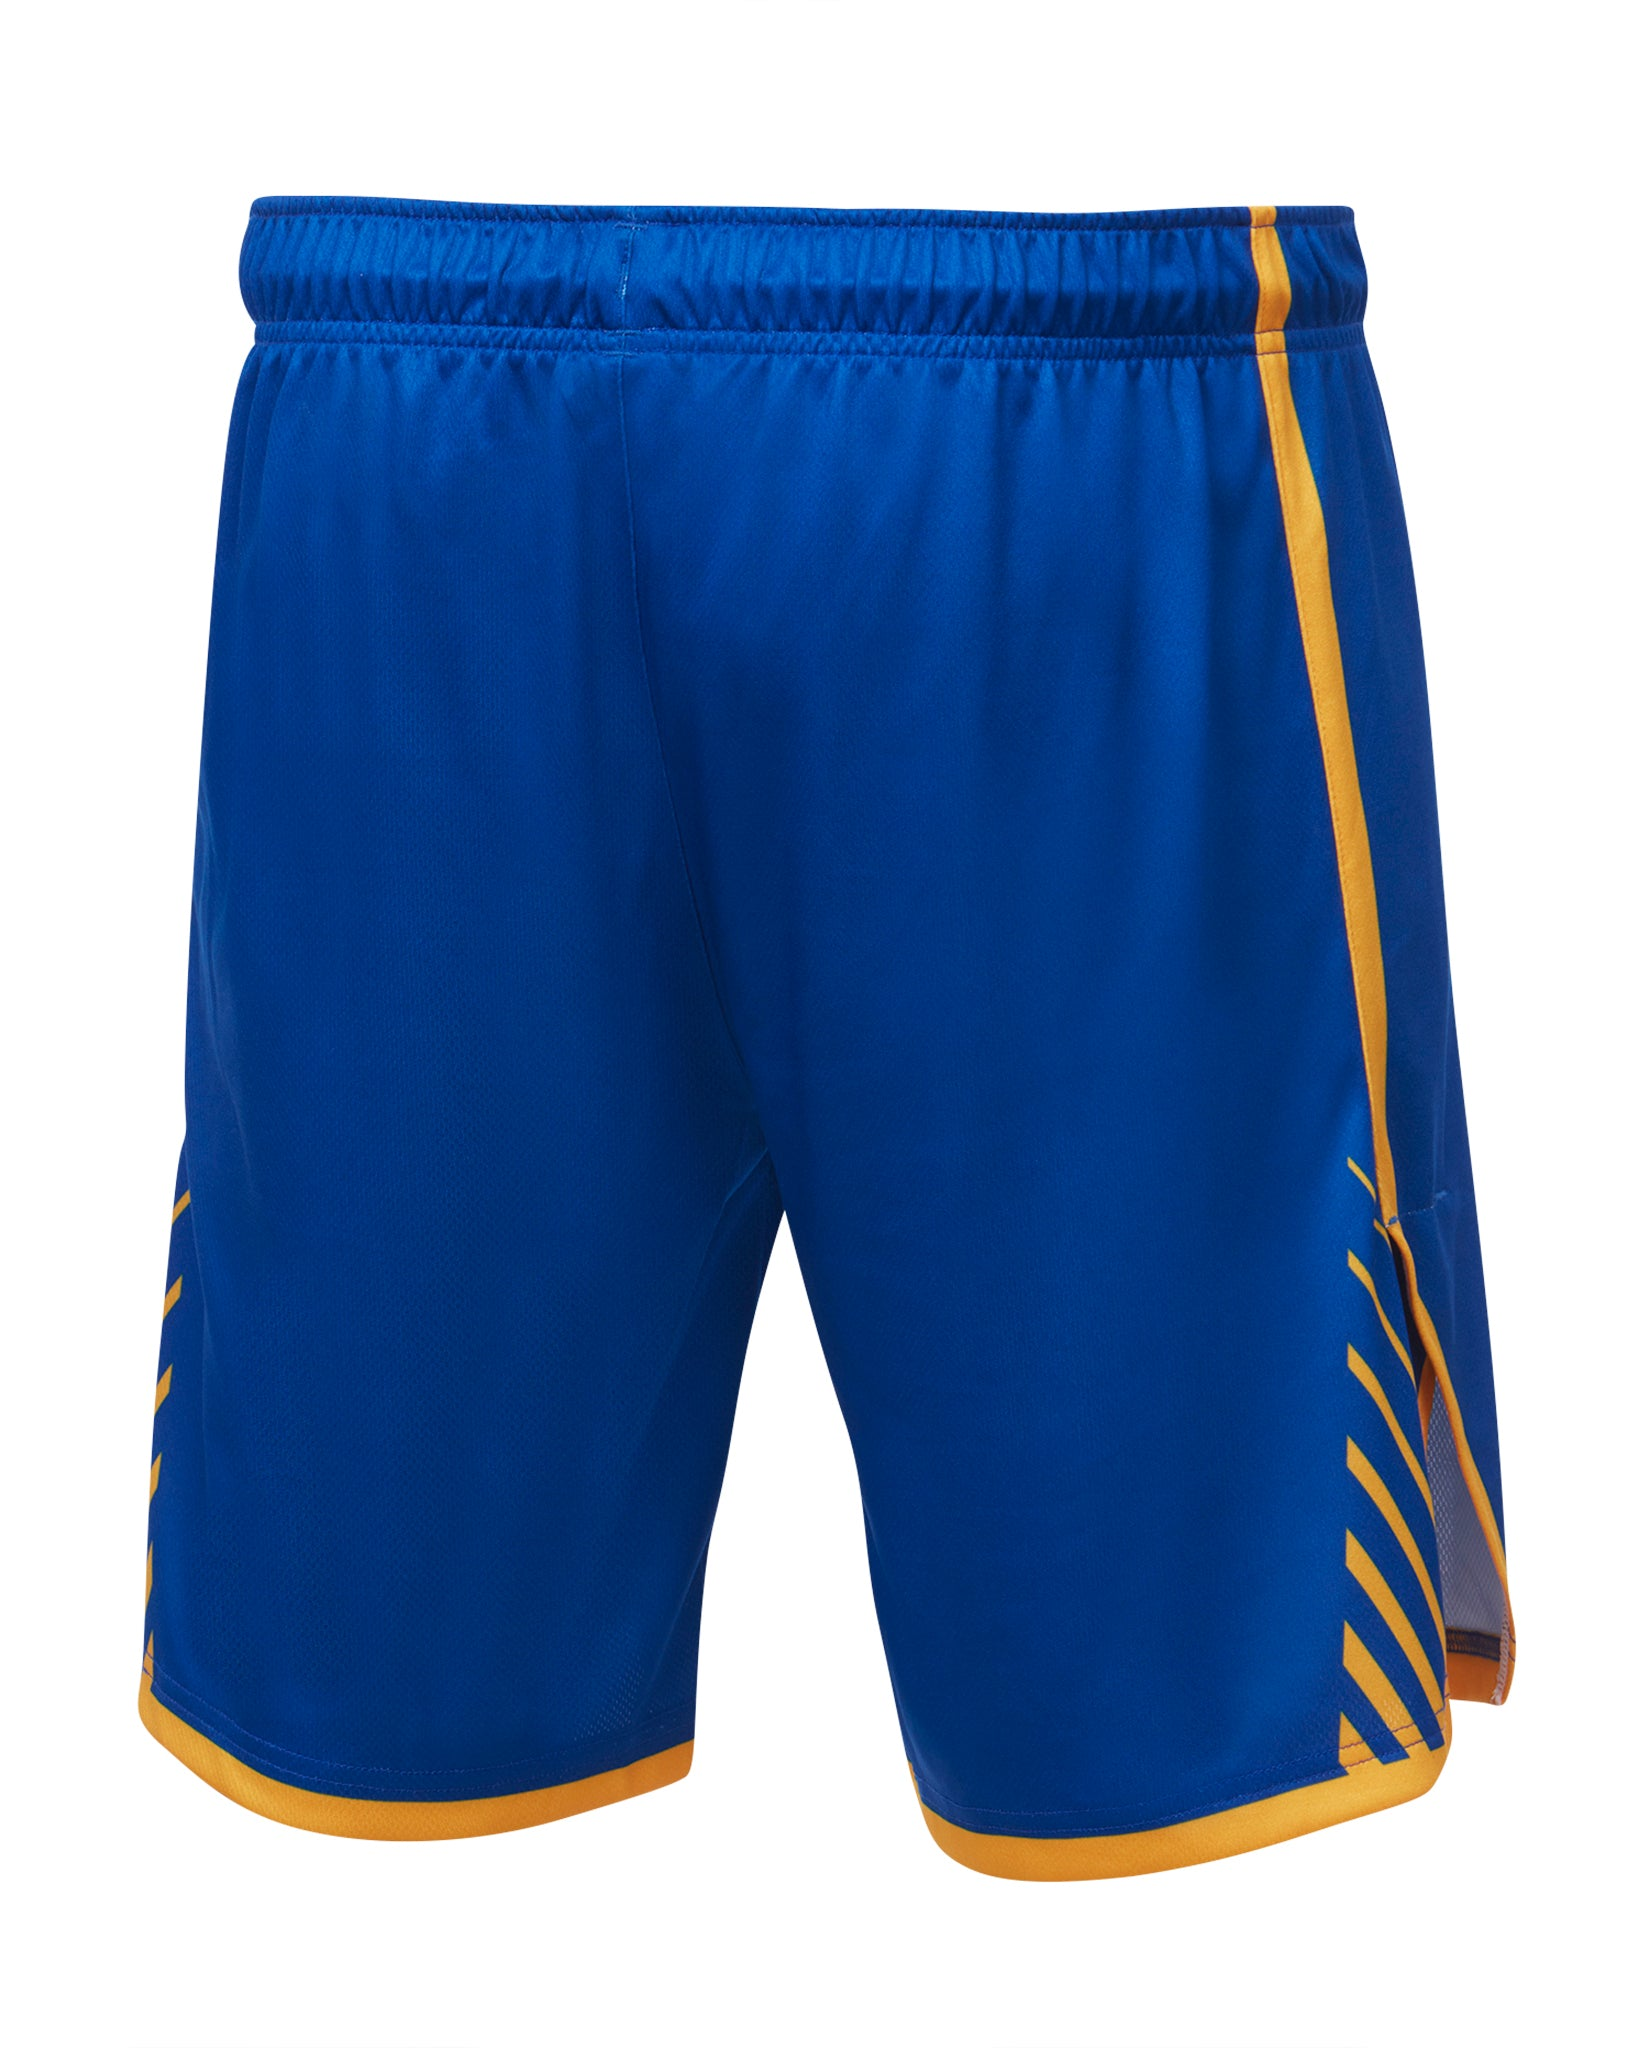 Brisbane Bullets 19/20 On Court Home Shorts